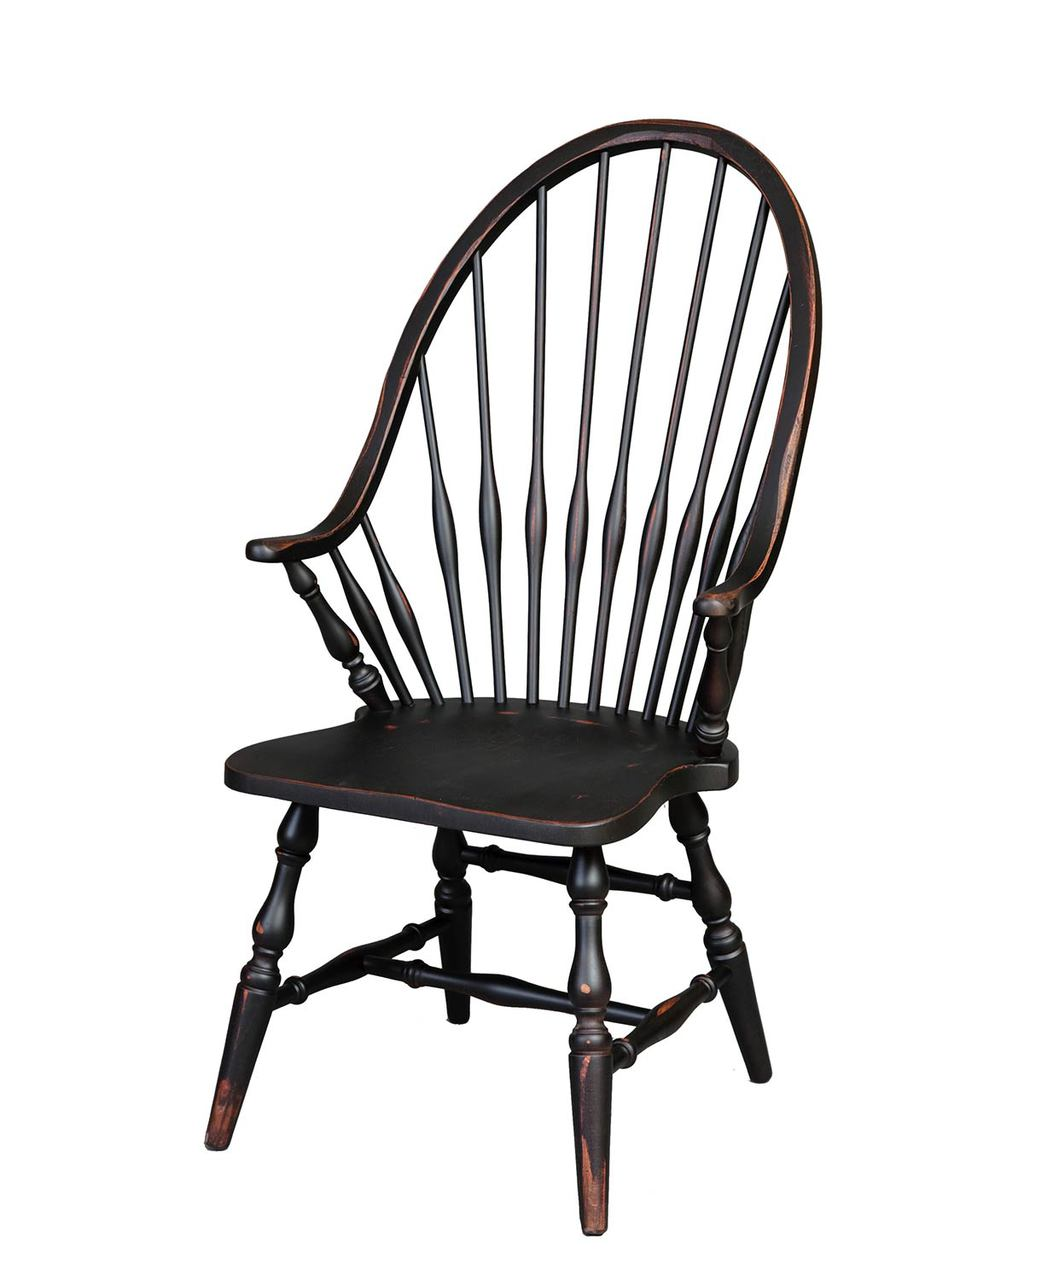 sc 1 st  CountryLivingPrimitives.com & Amish Handcrafted - Windsor Arm Chair - Vintage Creations By Sam